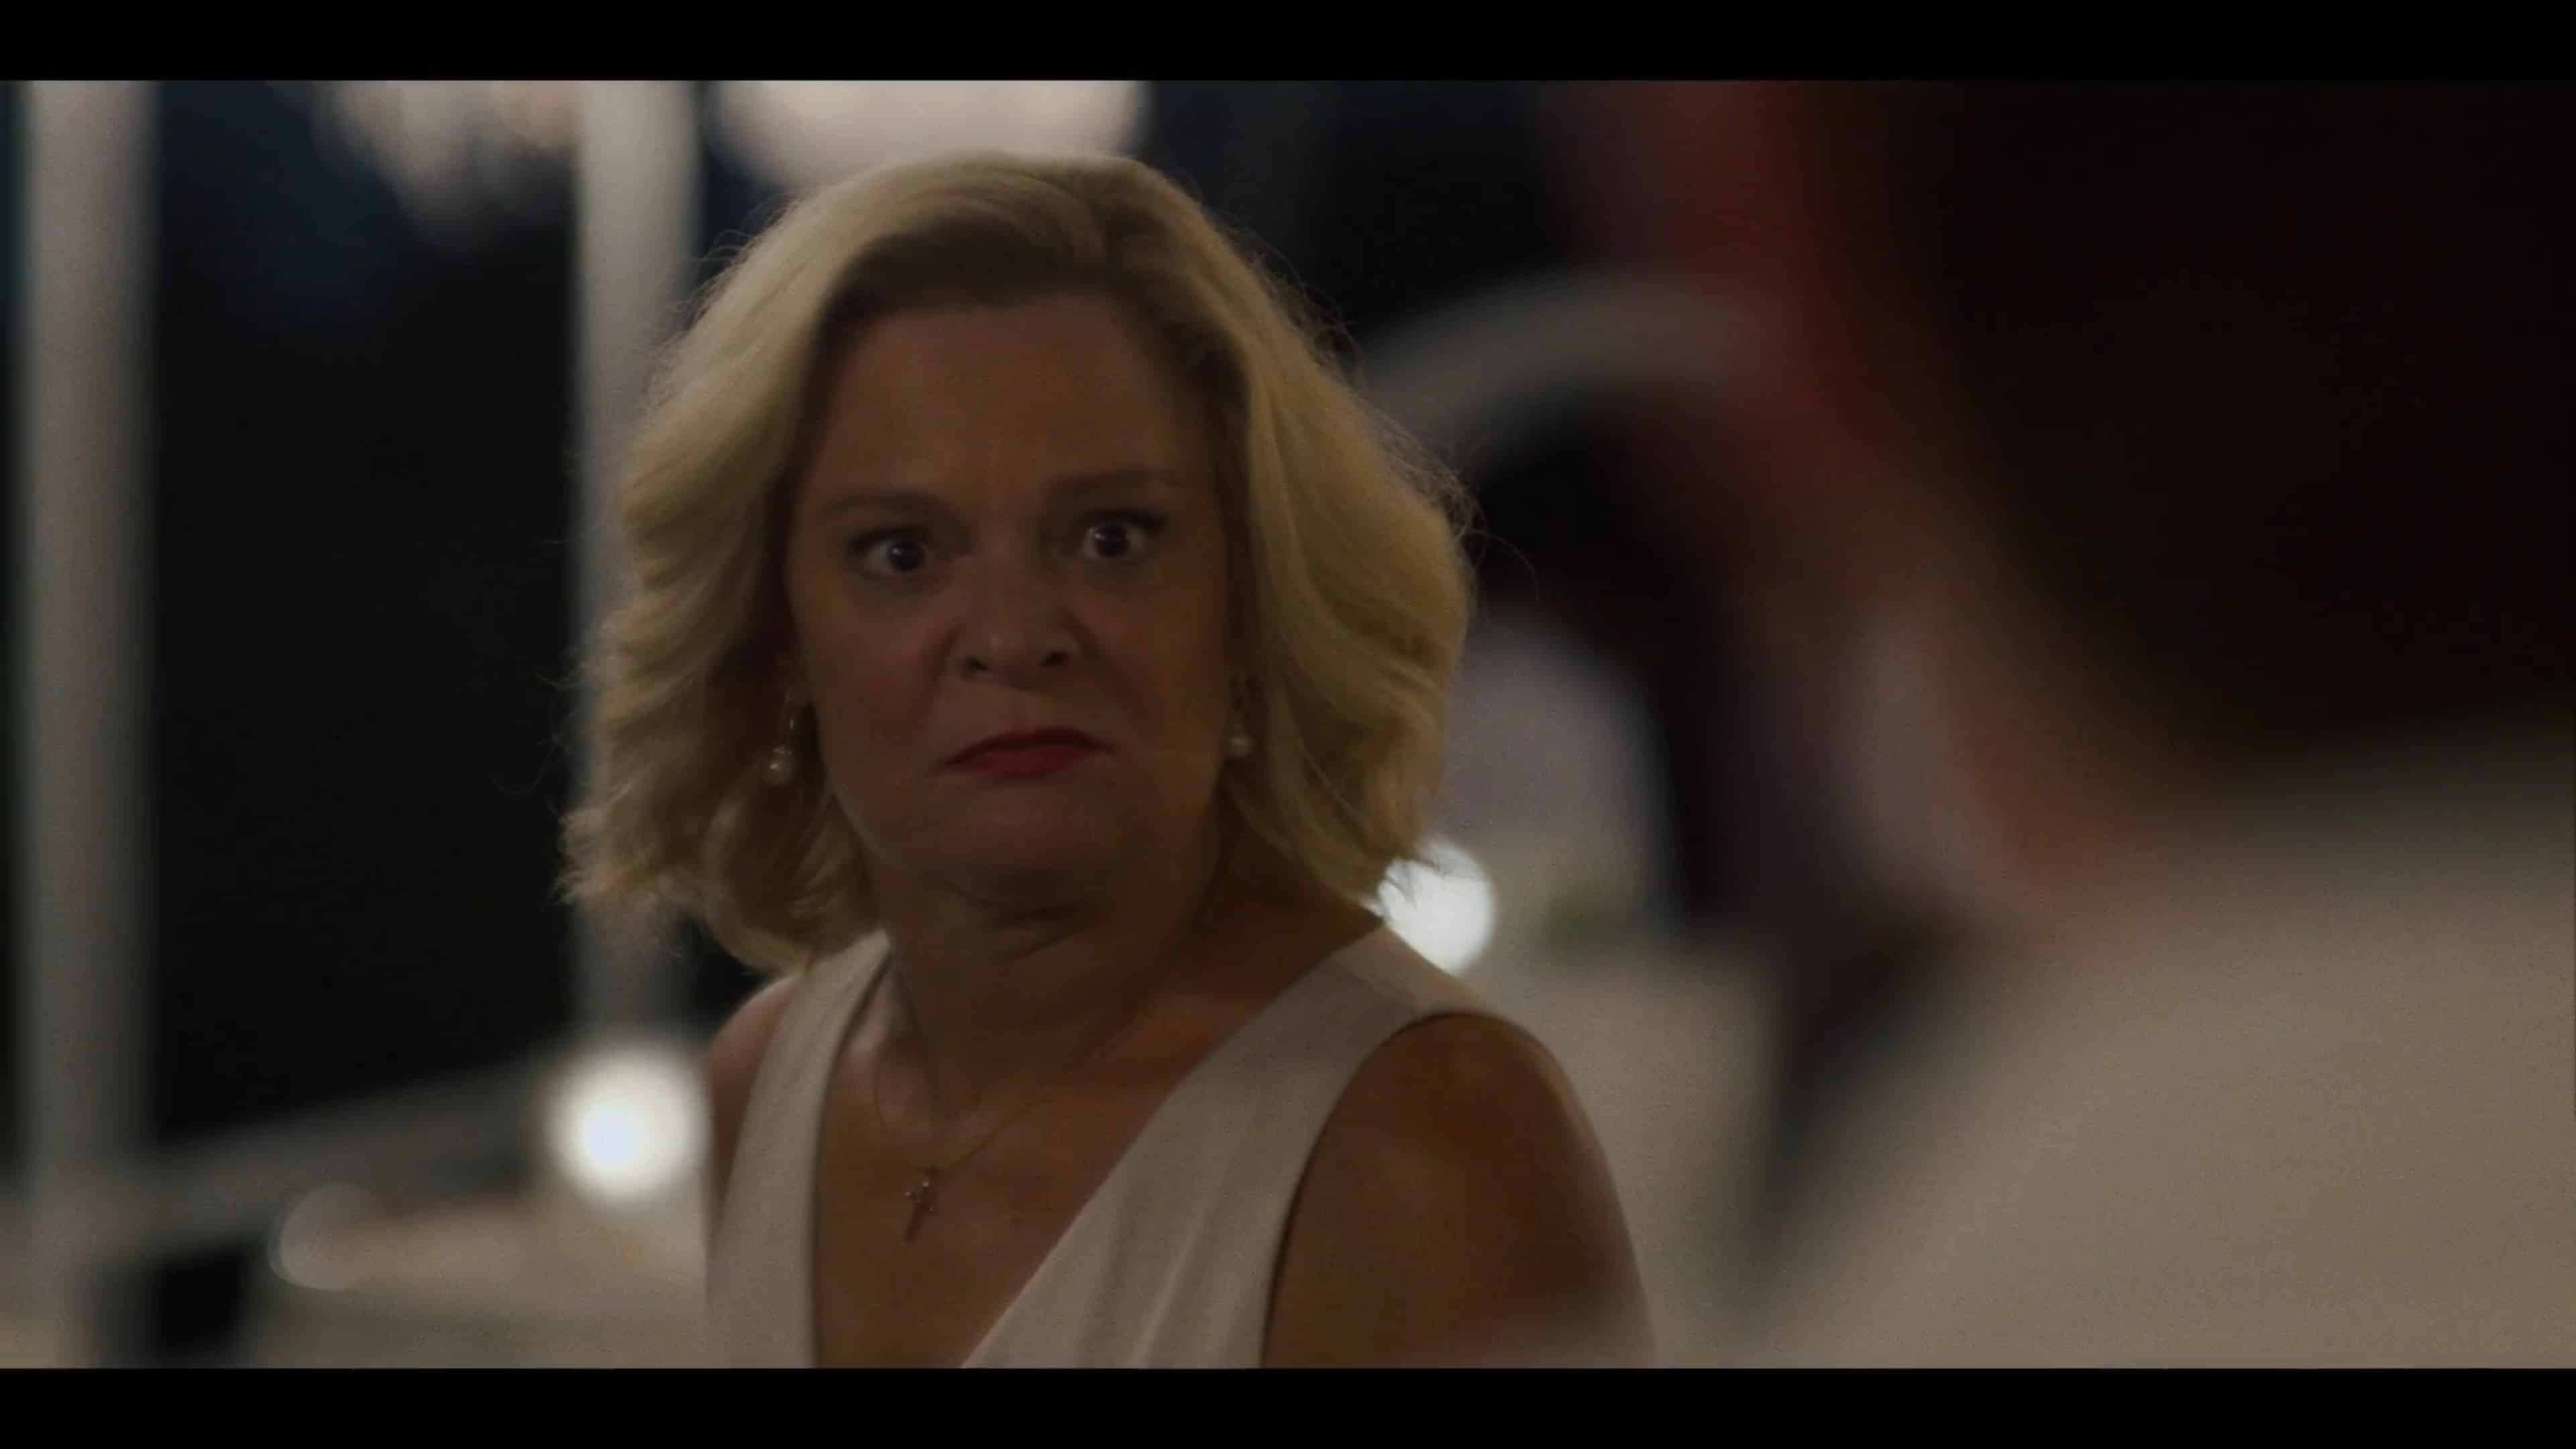 Megan (Martha Plimpton) reacting to Nathan